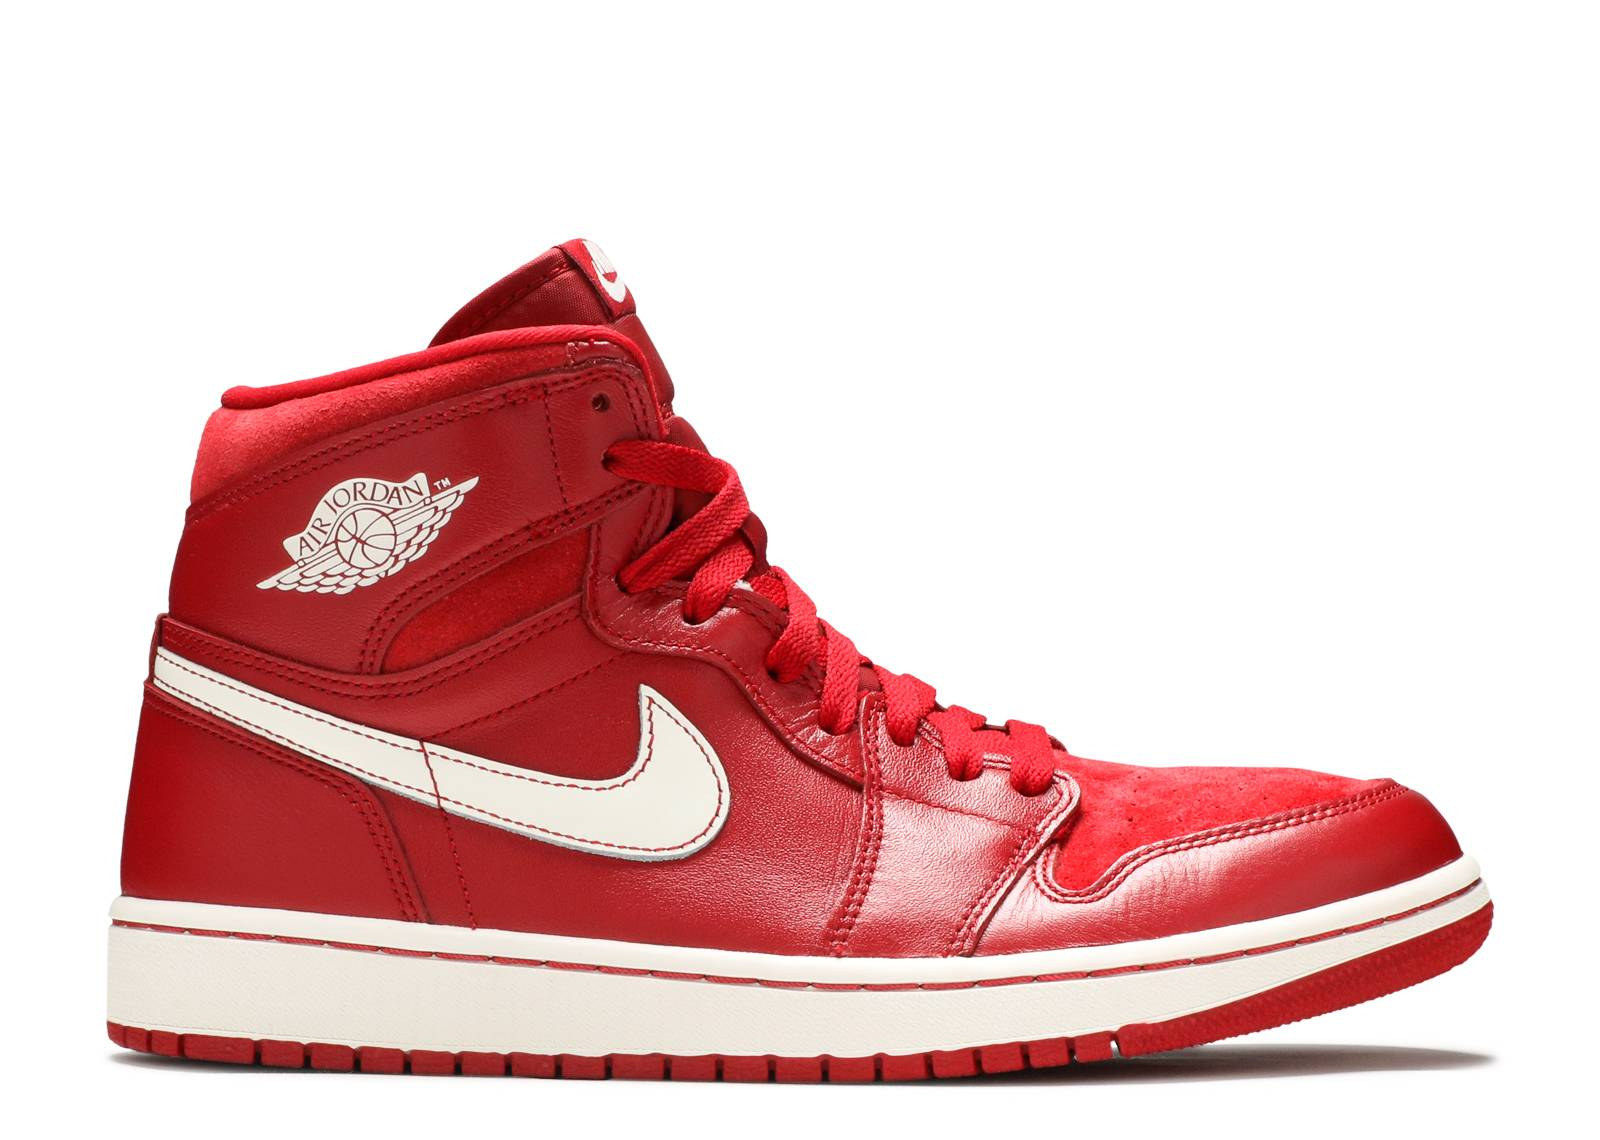 red jordans shoes for women